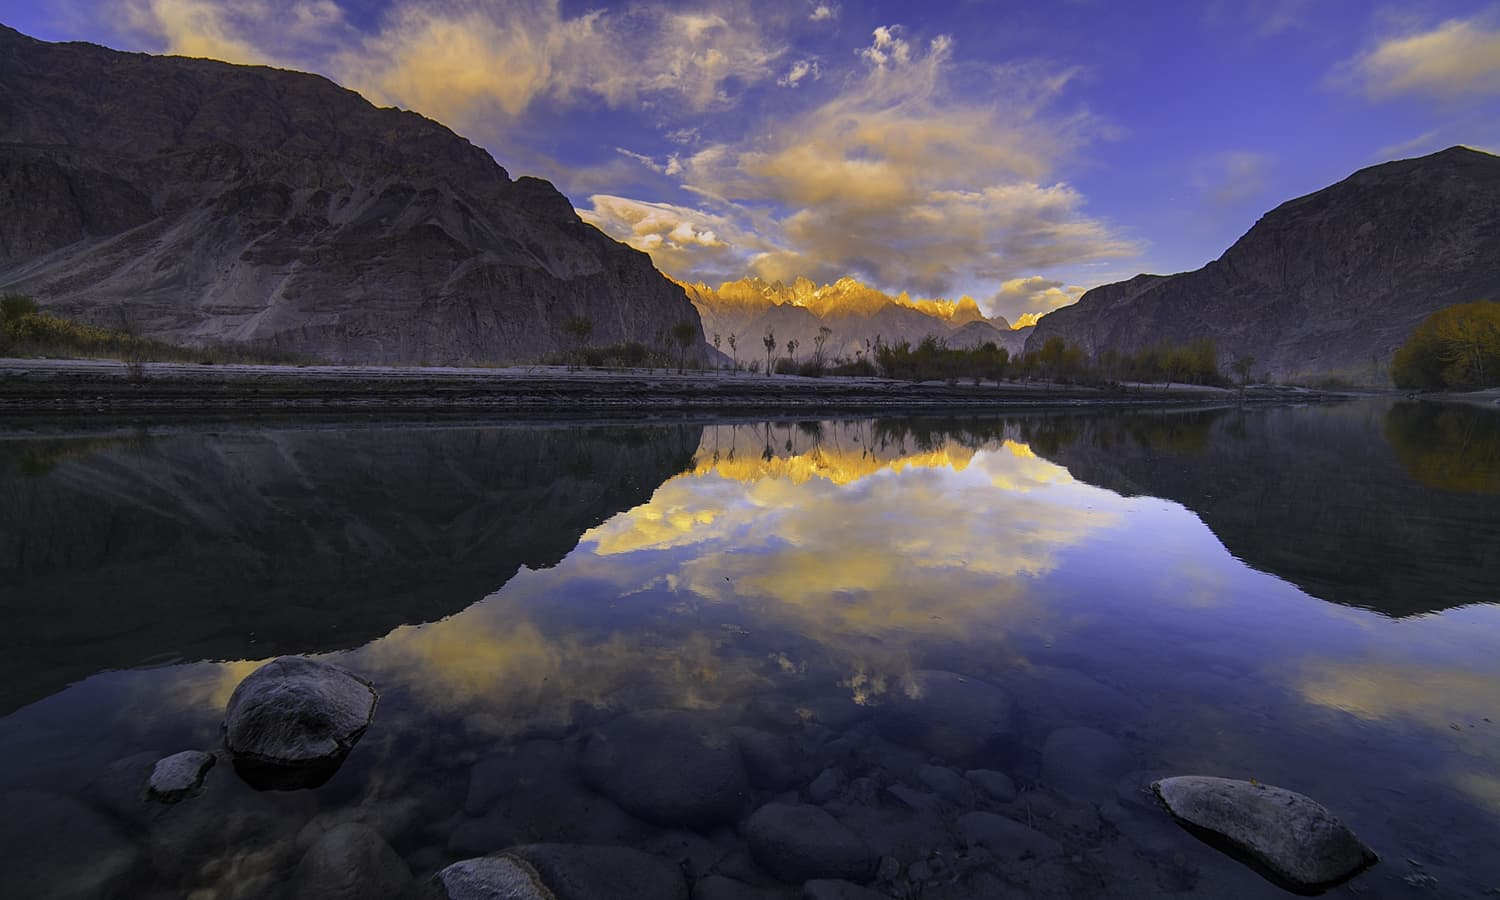 Dusk at Shyok river. — S.M.Bukhari